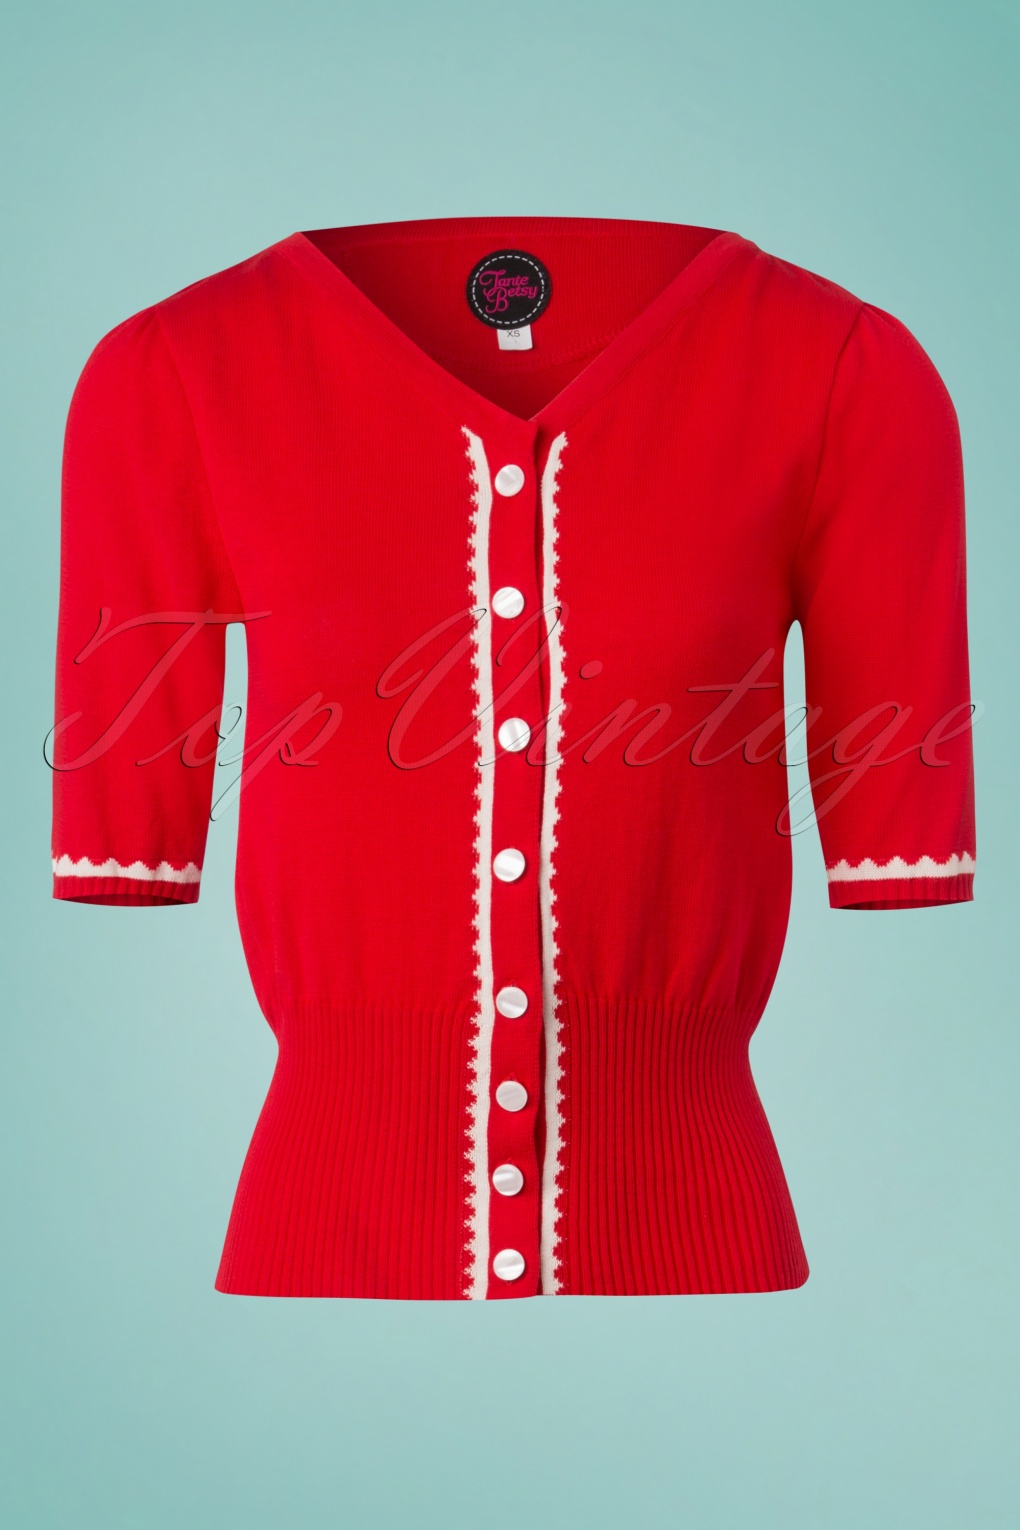 1940s Blouses and Tops 60s Summer Paris Cardigan in Red £61.31 AT vintagedancer.com